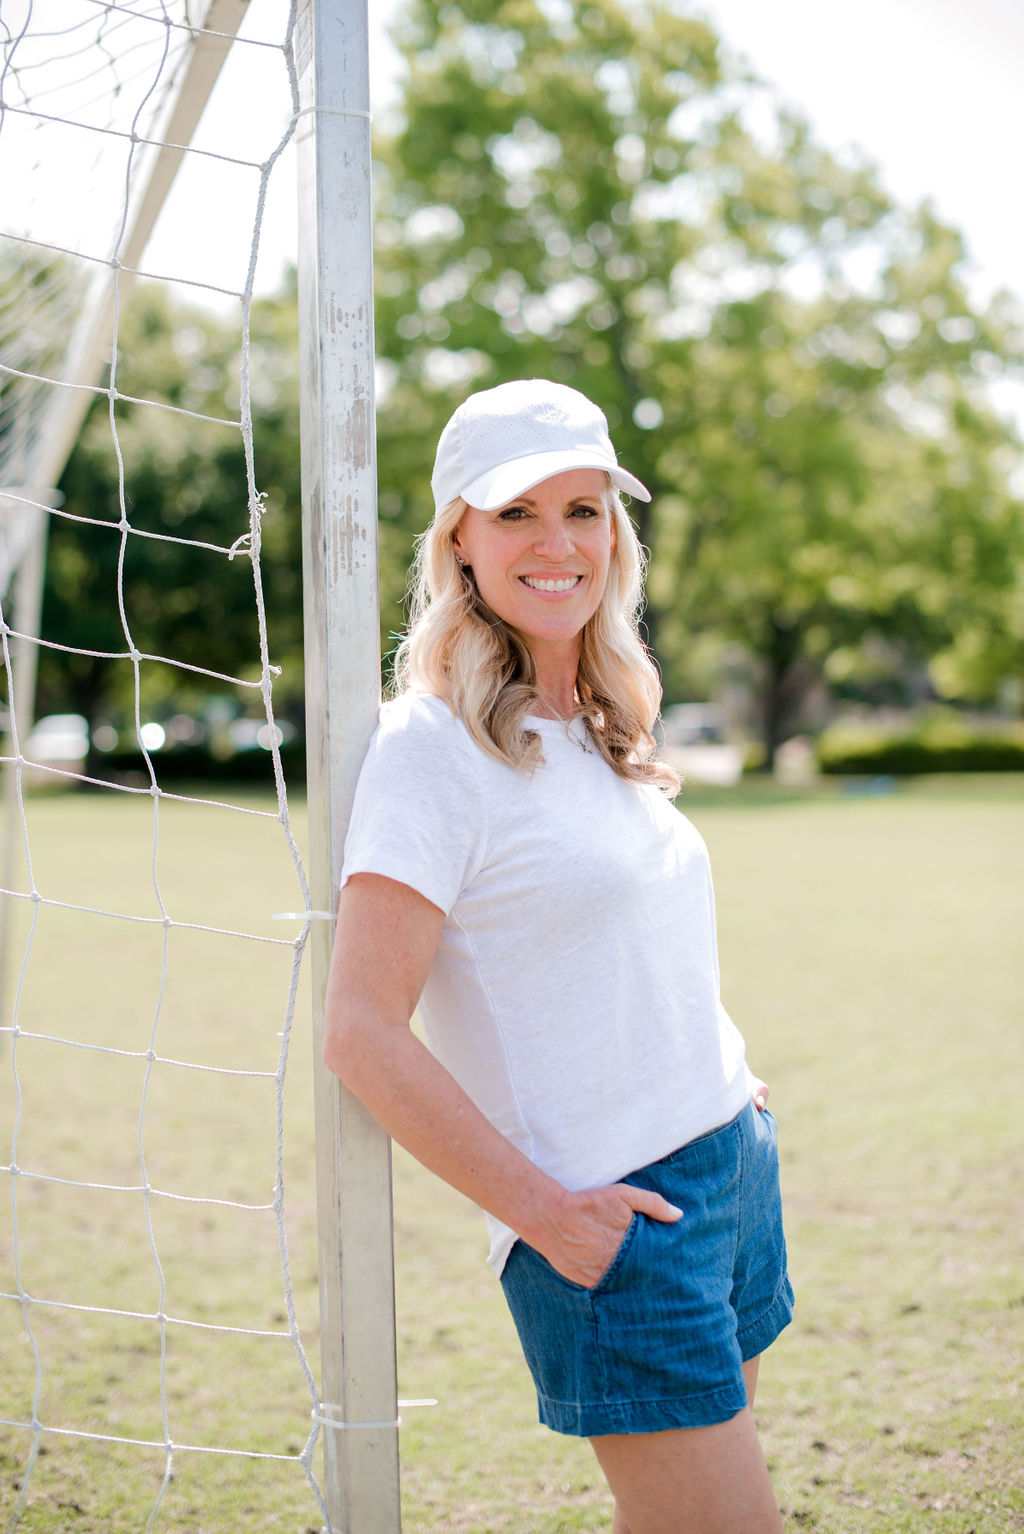 Introducing Bahadu | Hats designed specifically for Women